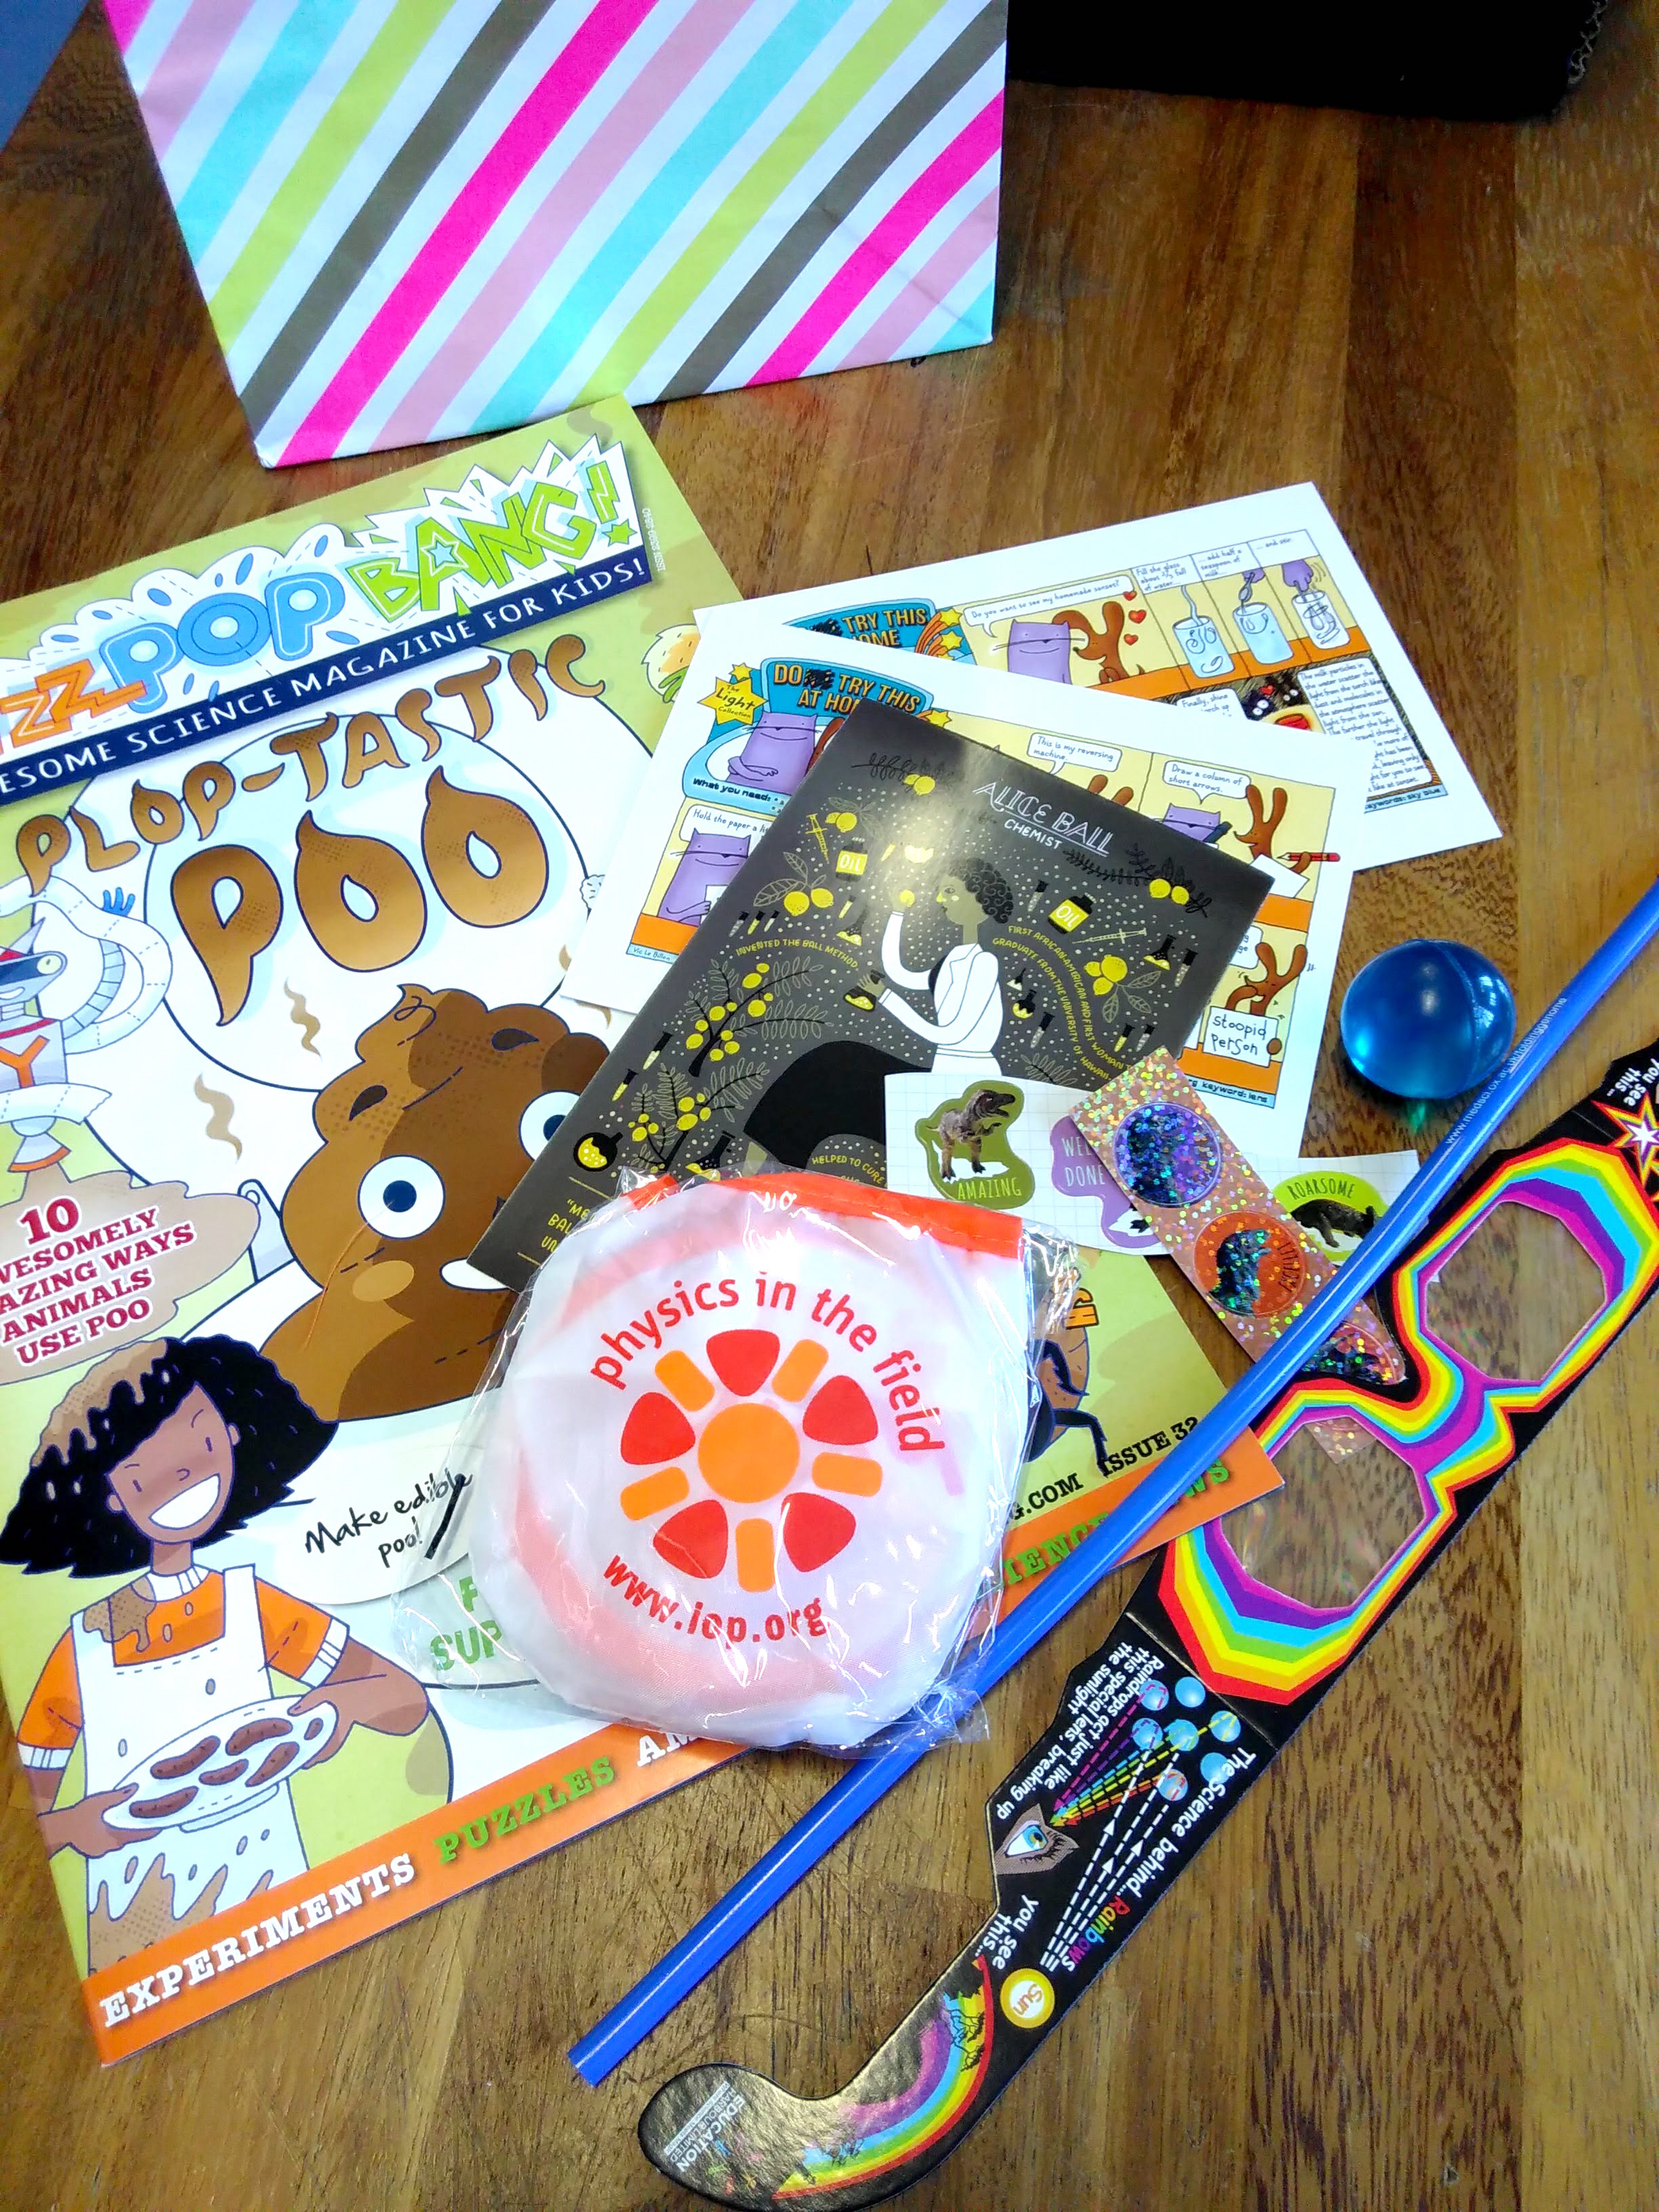 Look at all the science goodies in our goody bags!